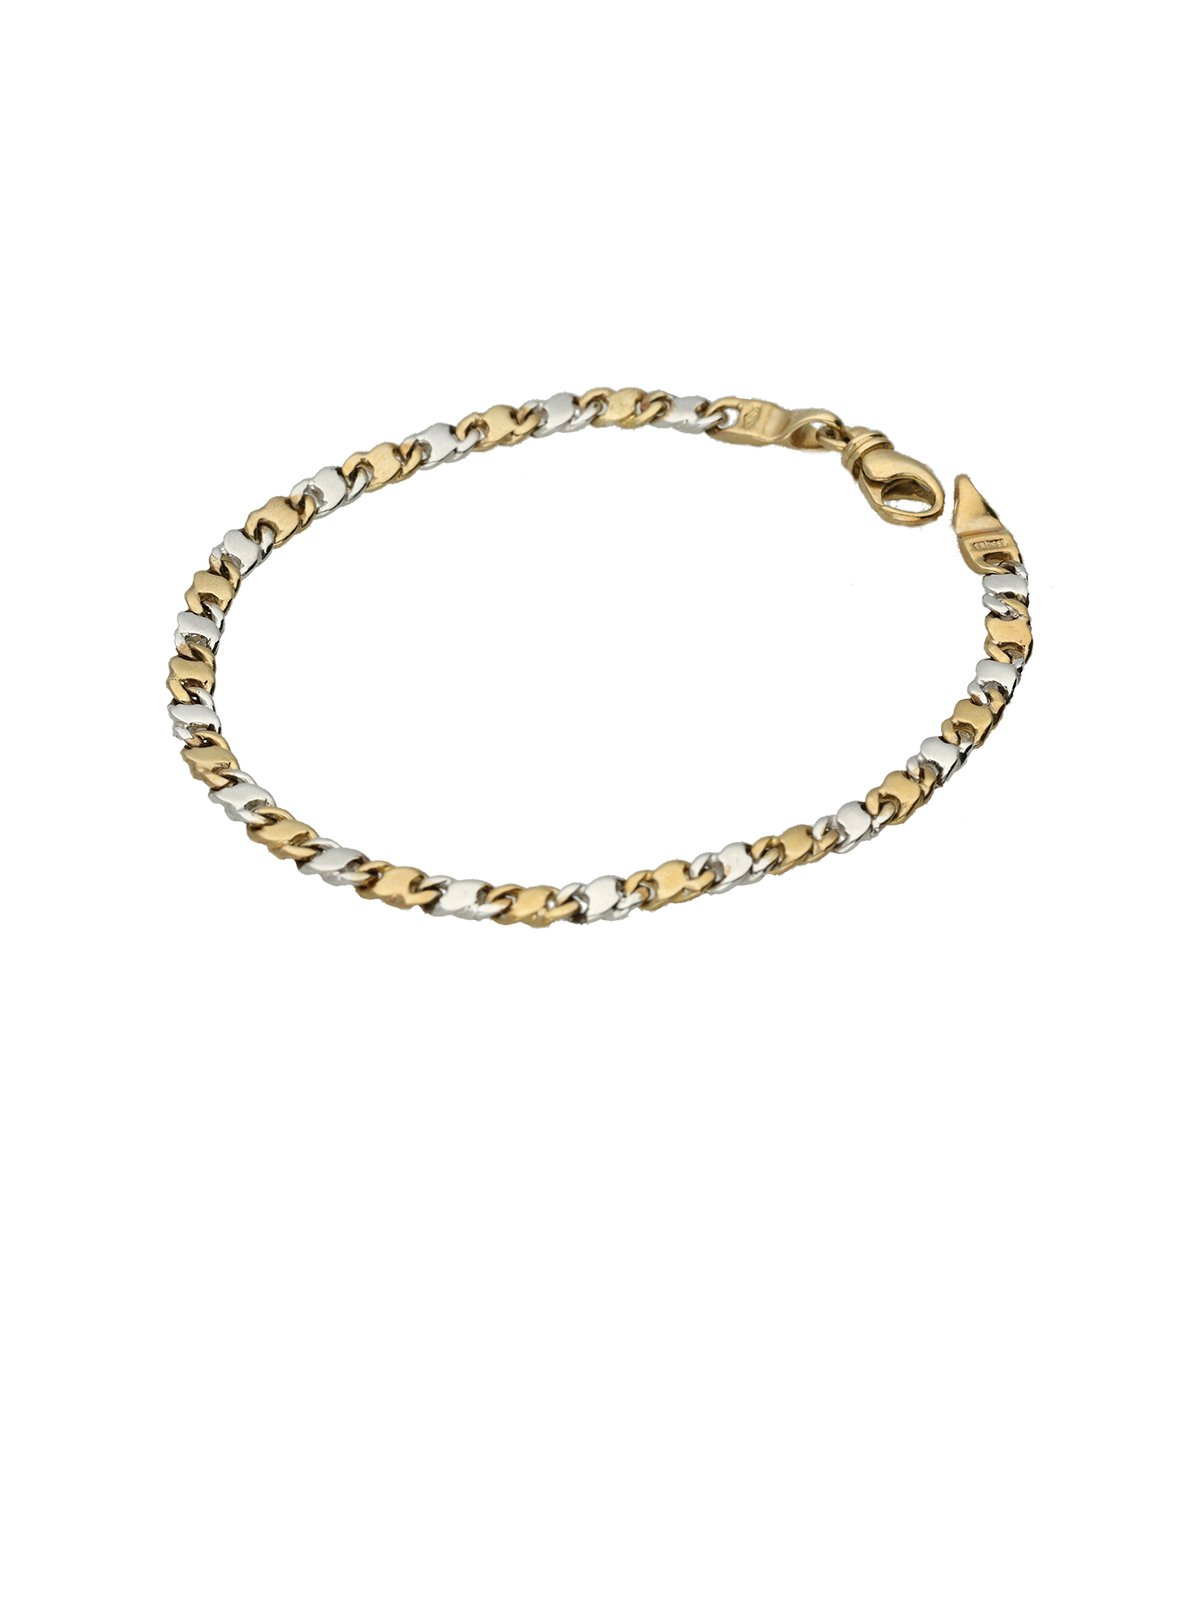 9ct yellow and white gold fancy link bracelet